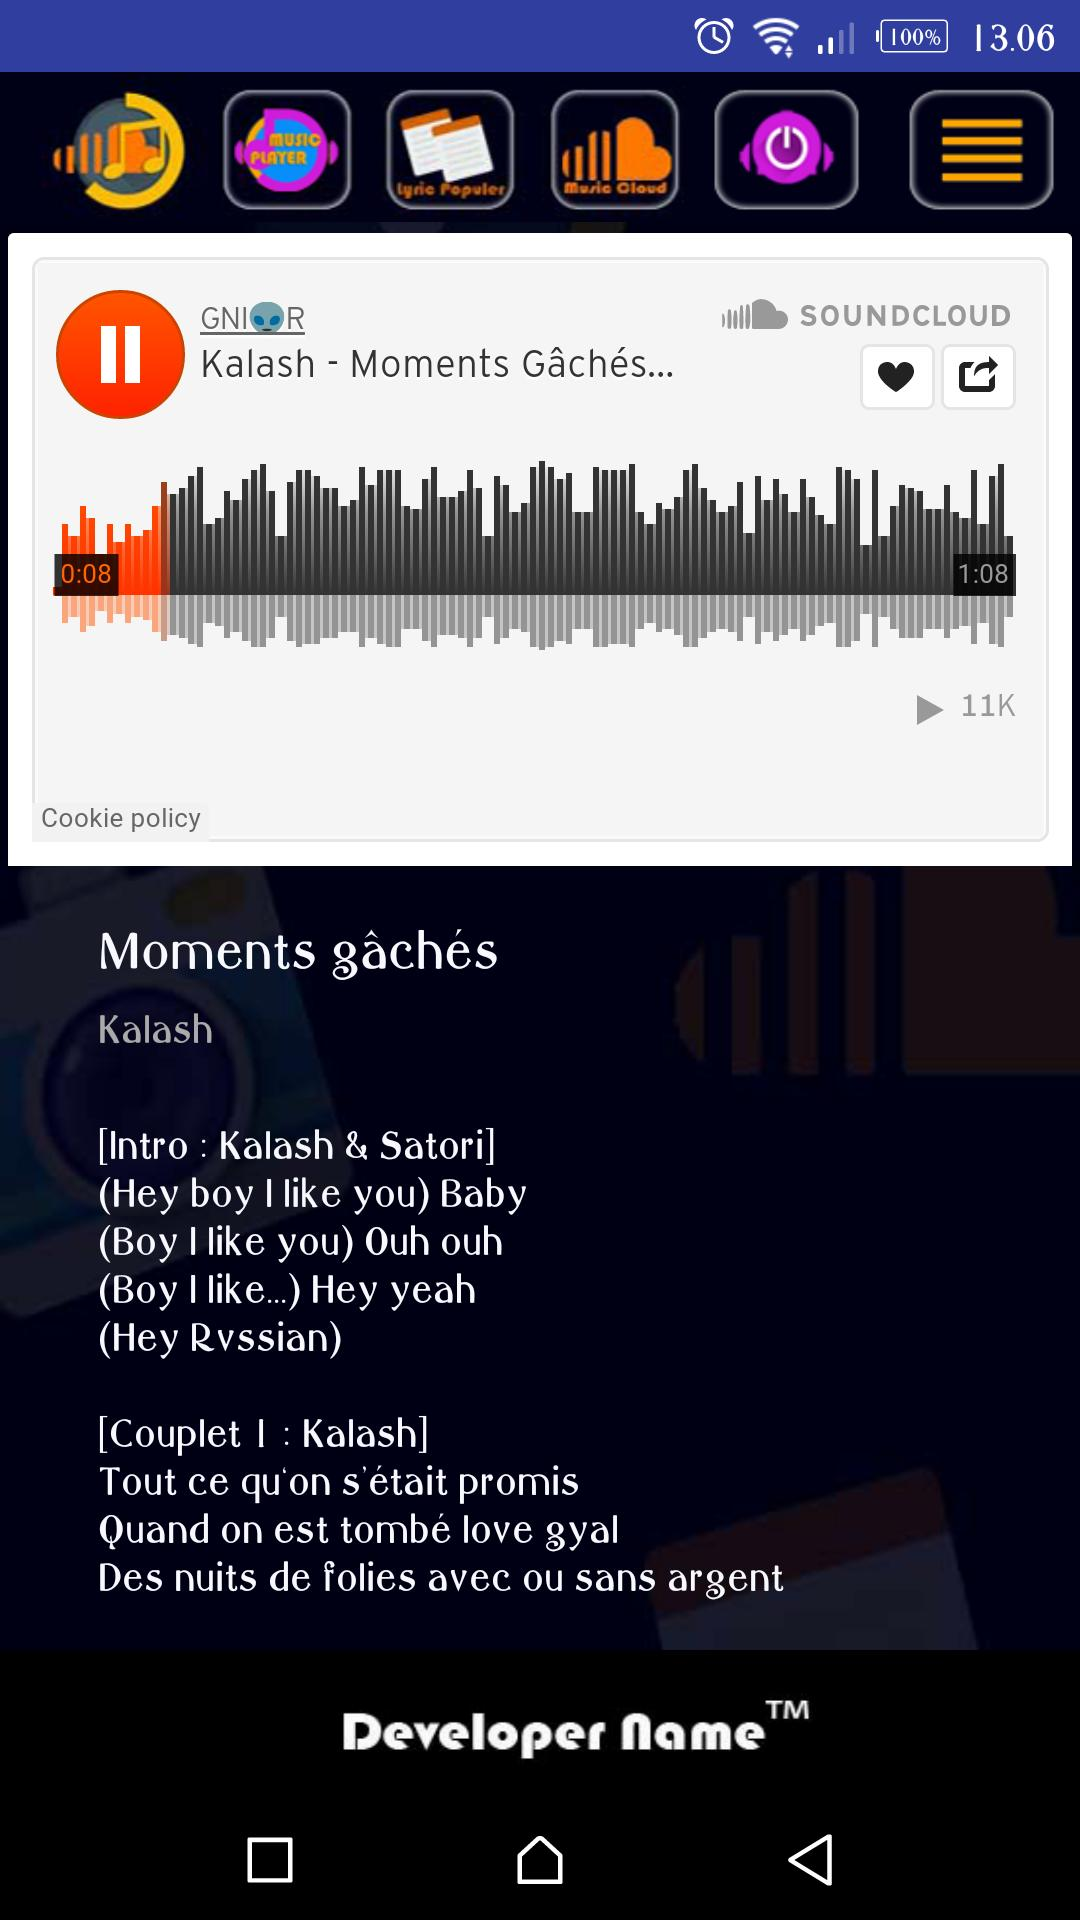 Song Kalash - Moments gâchés for Android - APK Download